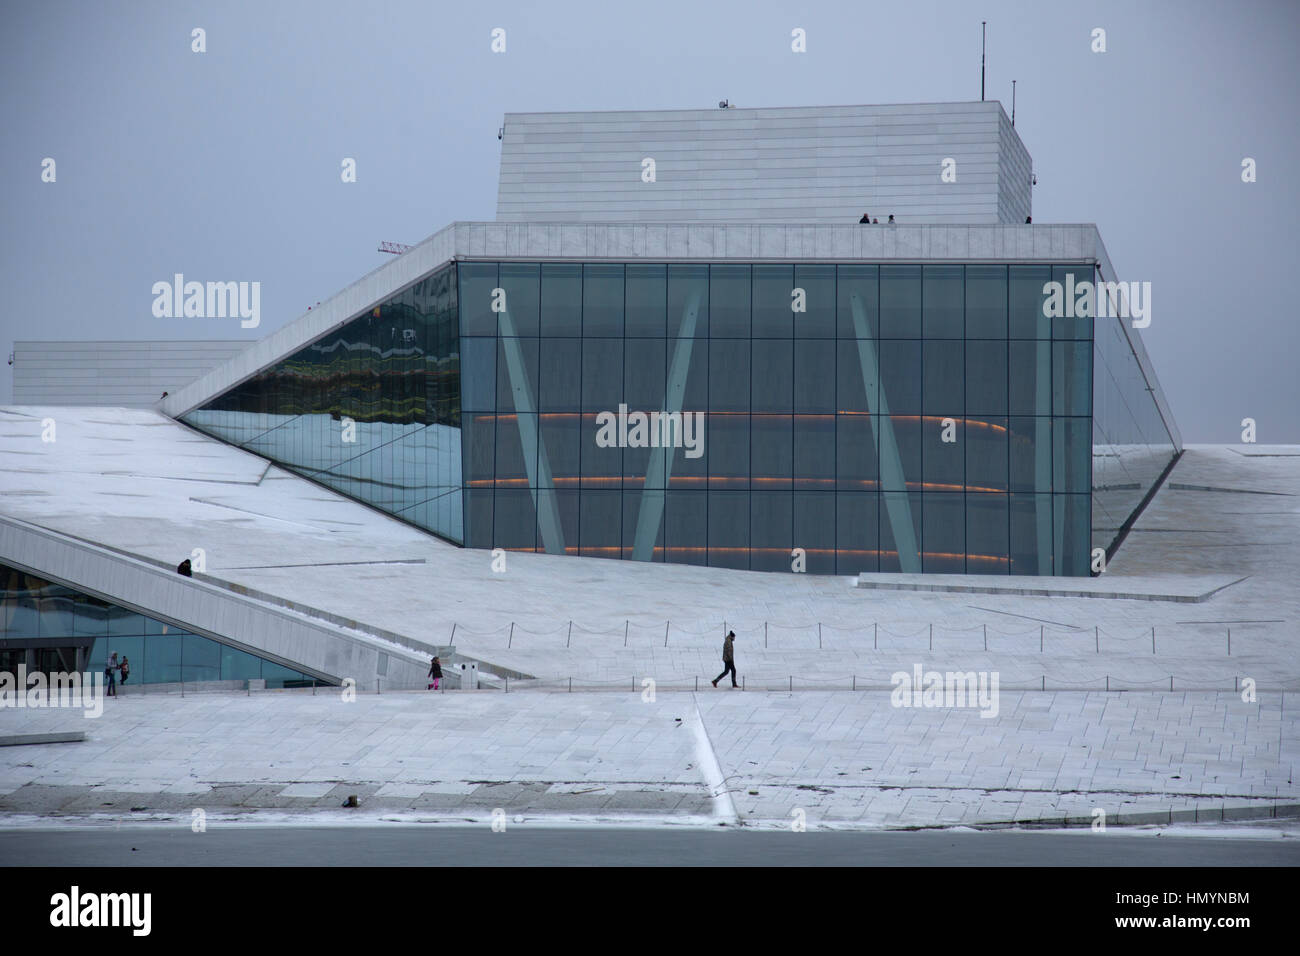 The Oslo Opera House, Is The Home Of The Norwegian National Opera And  Ballet, And The National Opera Theatre In Norway, Scandinavia